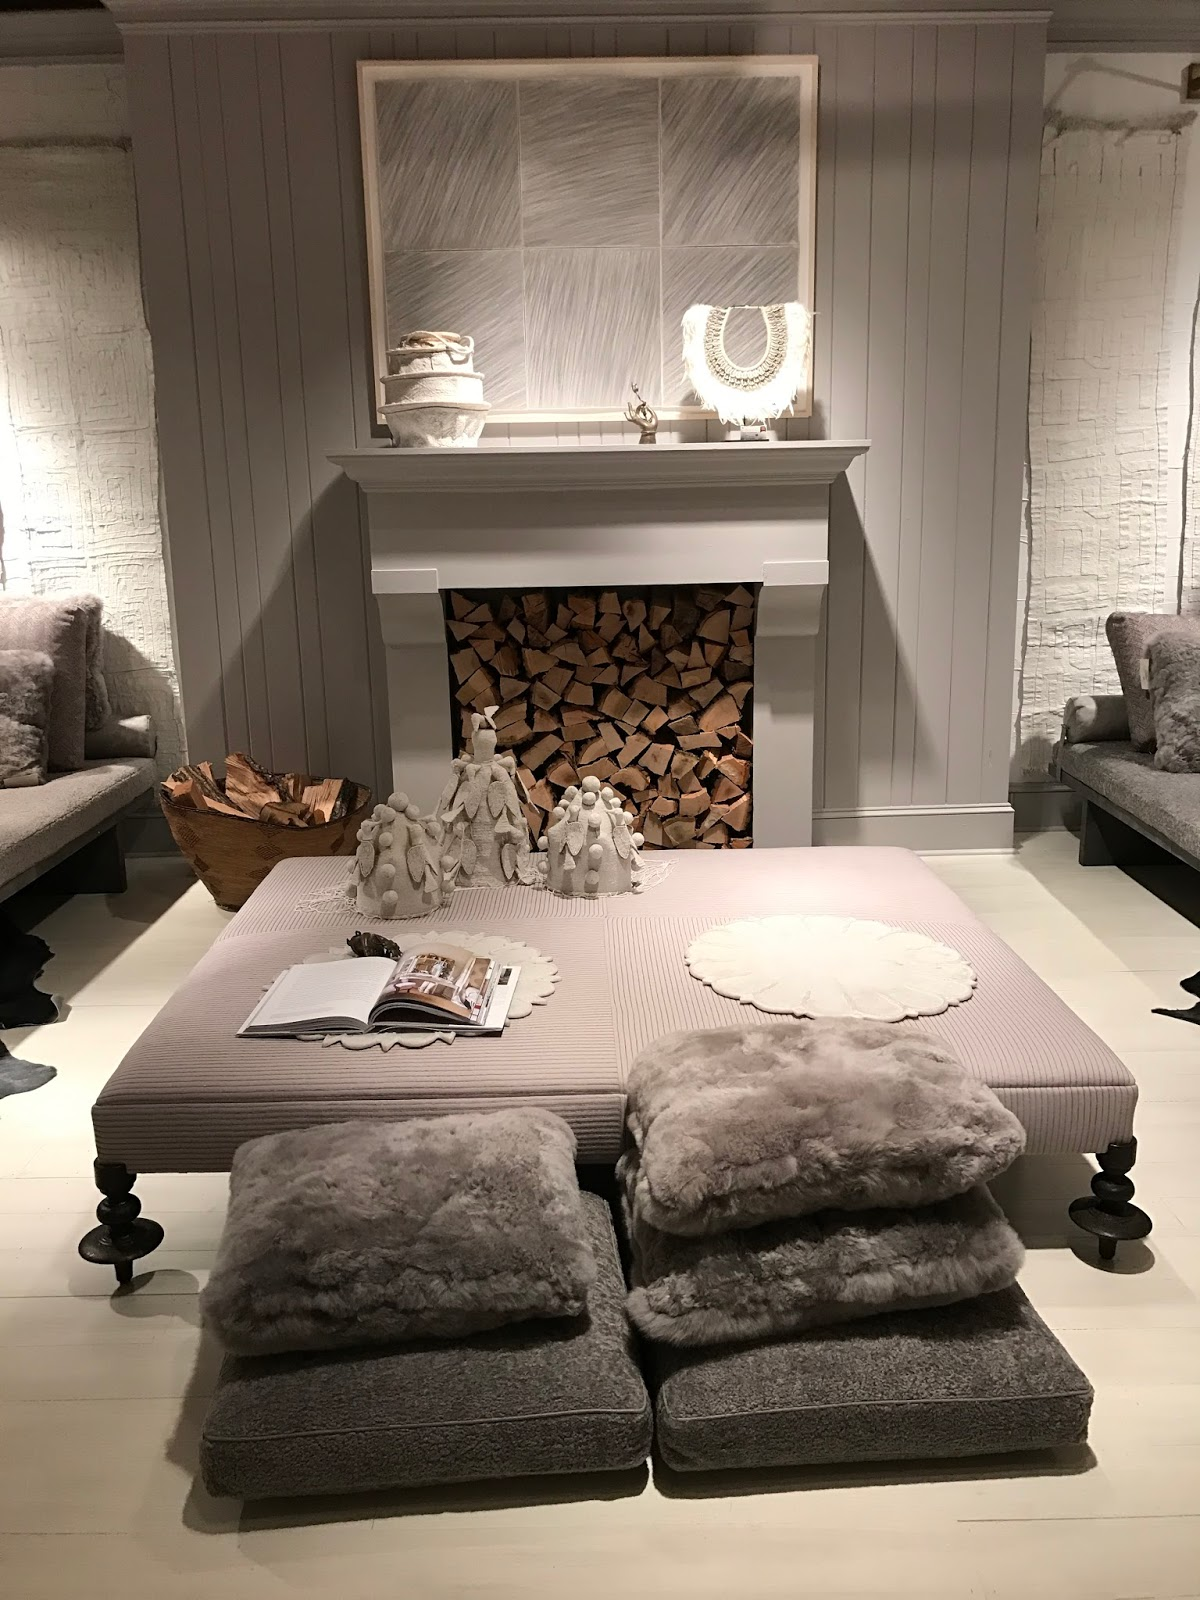 signature designs furniture worthy antique color. Windsor\u0027s Kept To Her Signature Grey Color Throughout The Collection But Things Interesting With Textures Such As Fur And Leather. Designs Furniture Worthy Antique L